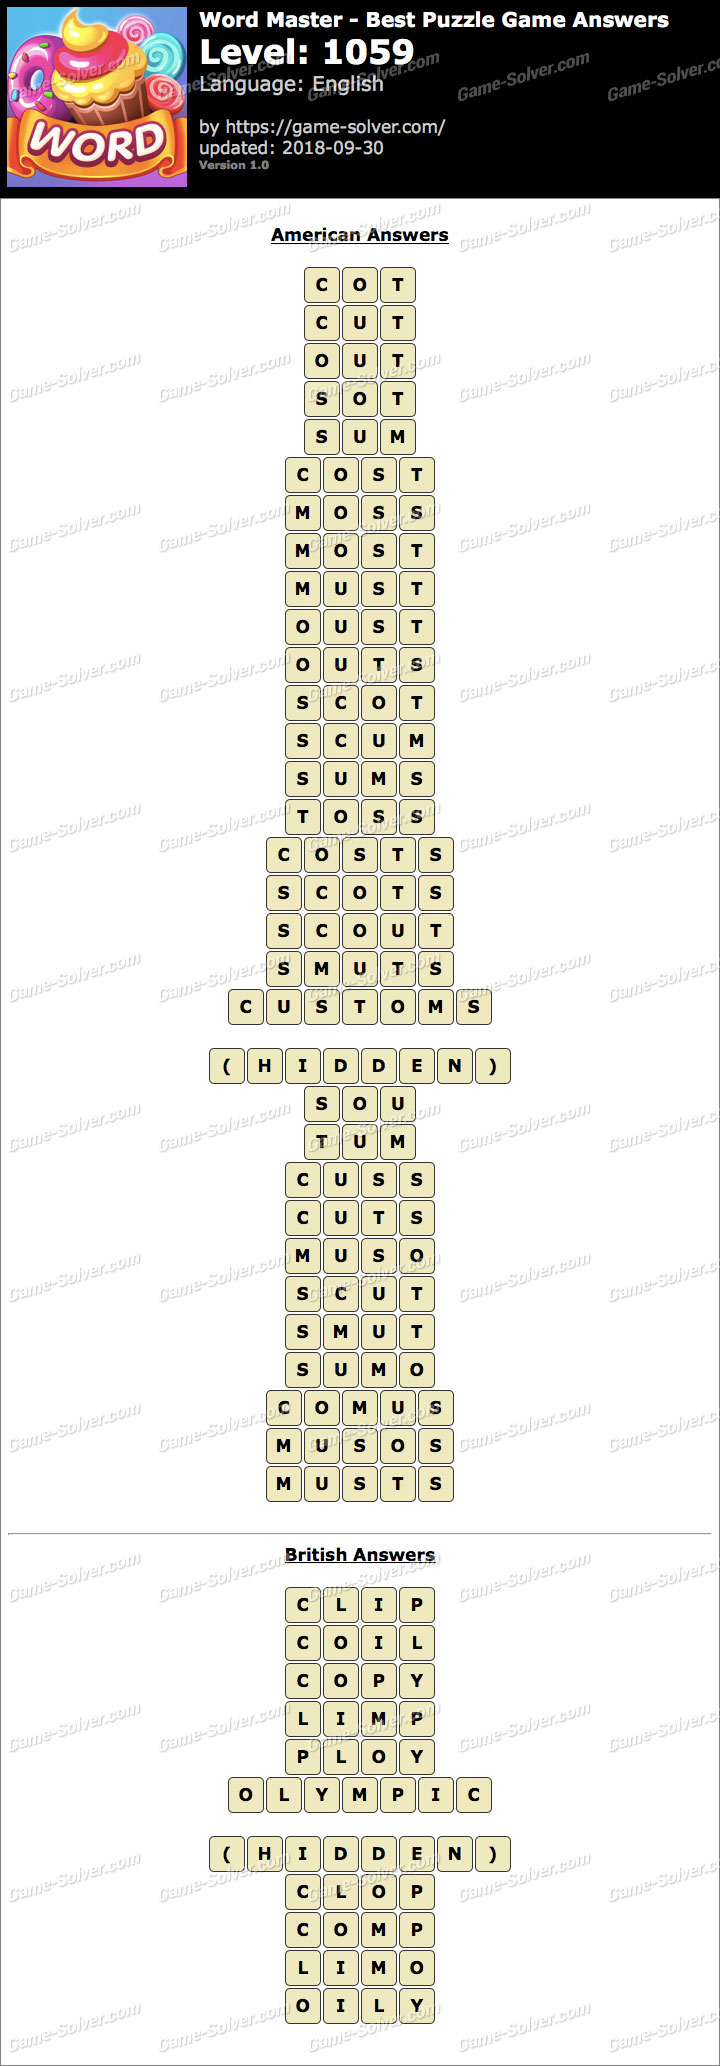 Word Master-Best Puzzle Game Level 1059 Answers